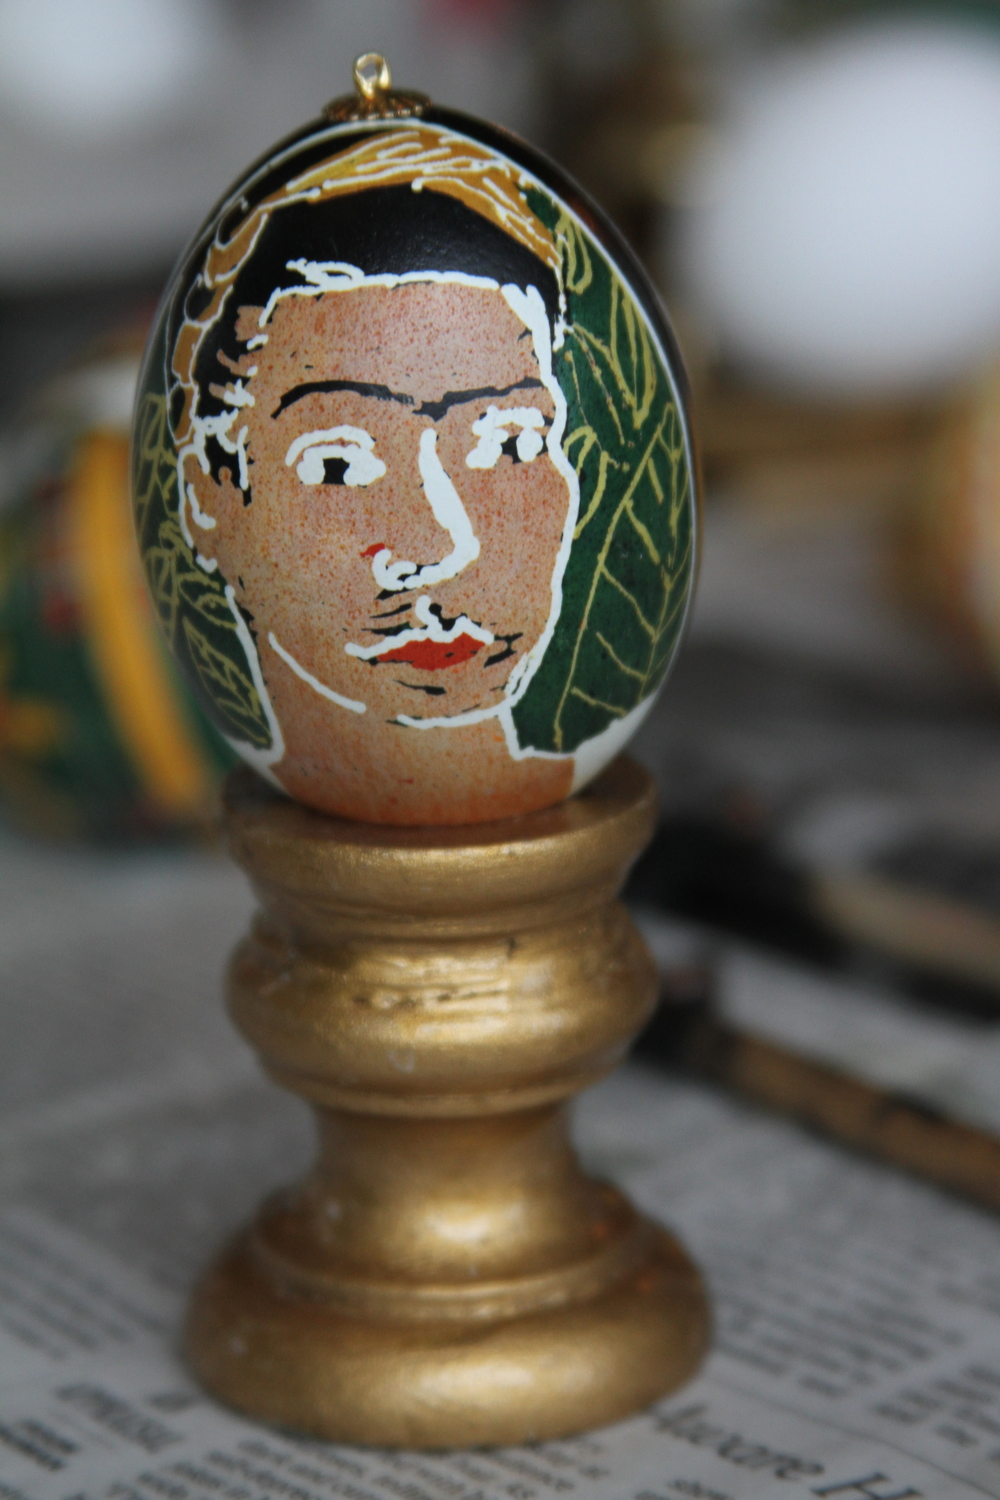 My First Ukrainian Egg of the Year- Frida Kahlo (Who Else)!